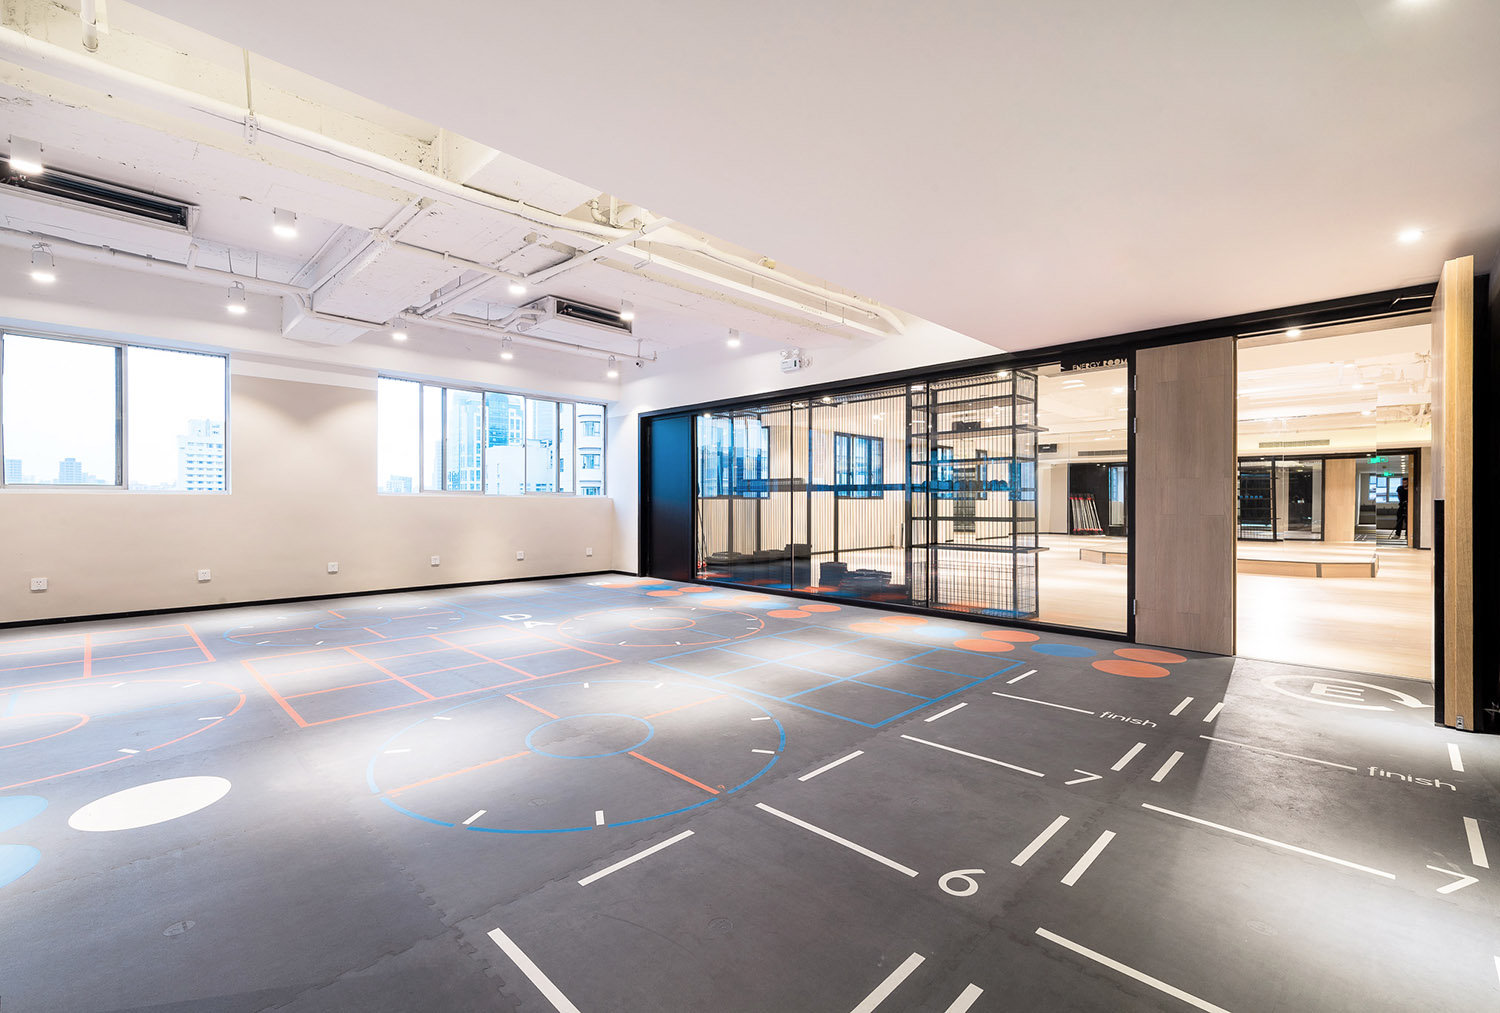 009-ZB-Fitness-Shanghai-China-by-More-Design-Office-4